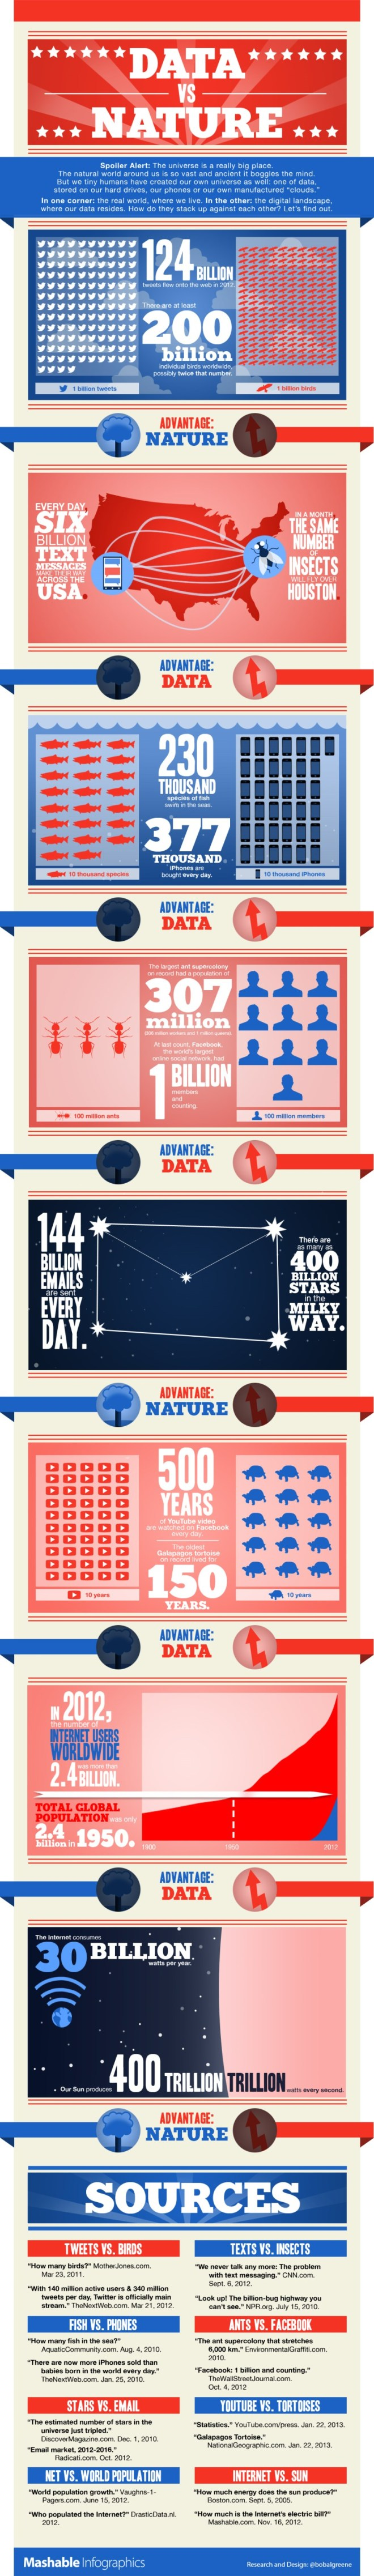 Data vs. Nature Infographic